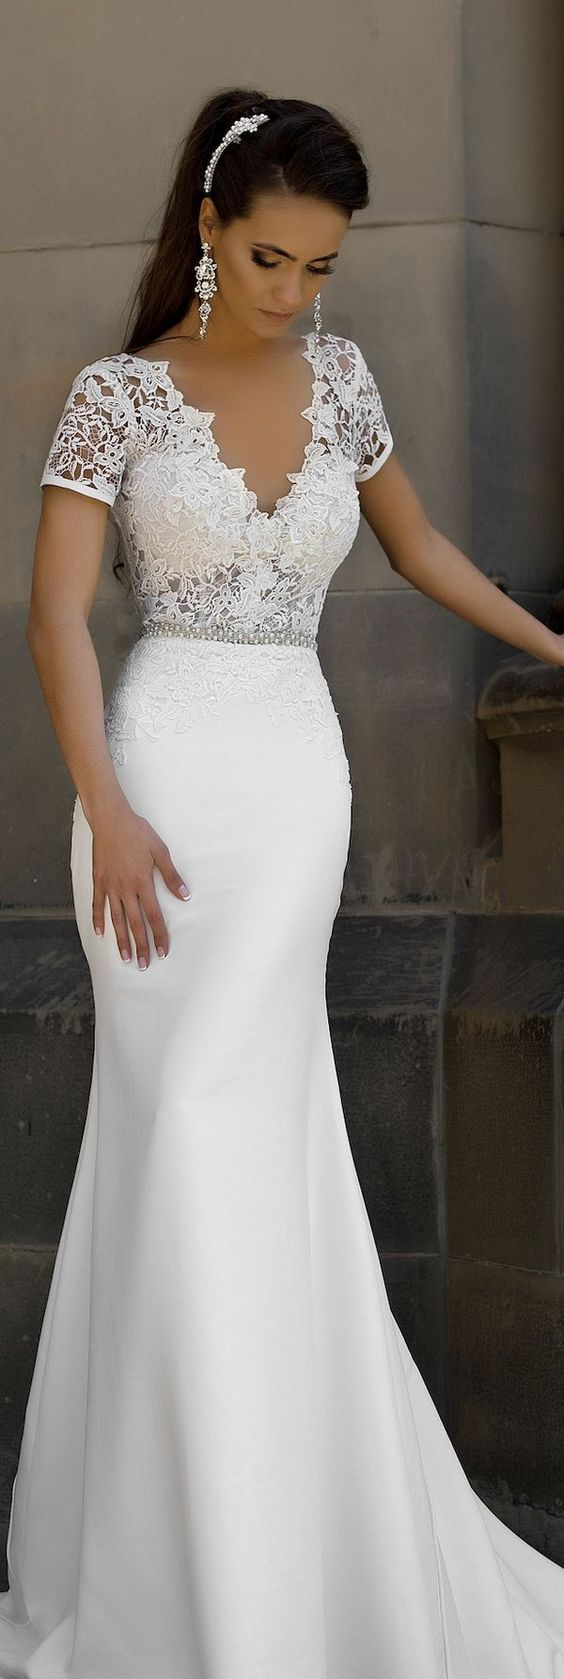 best images about my wedding dress on pinterest